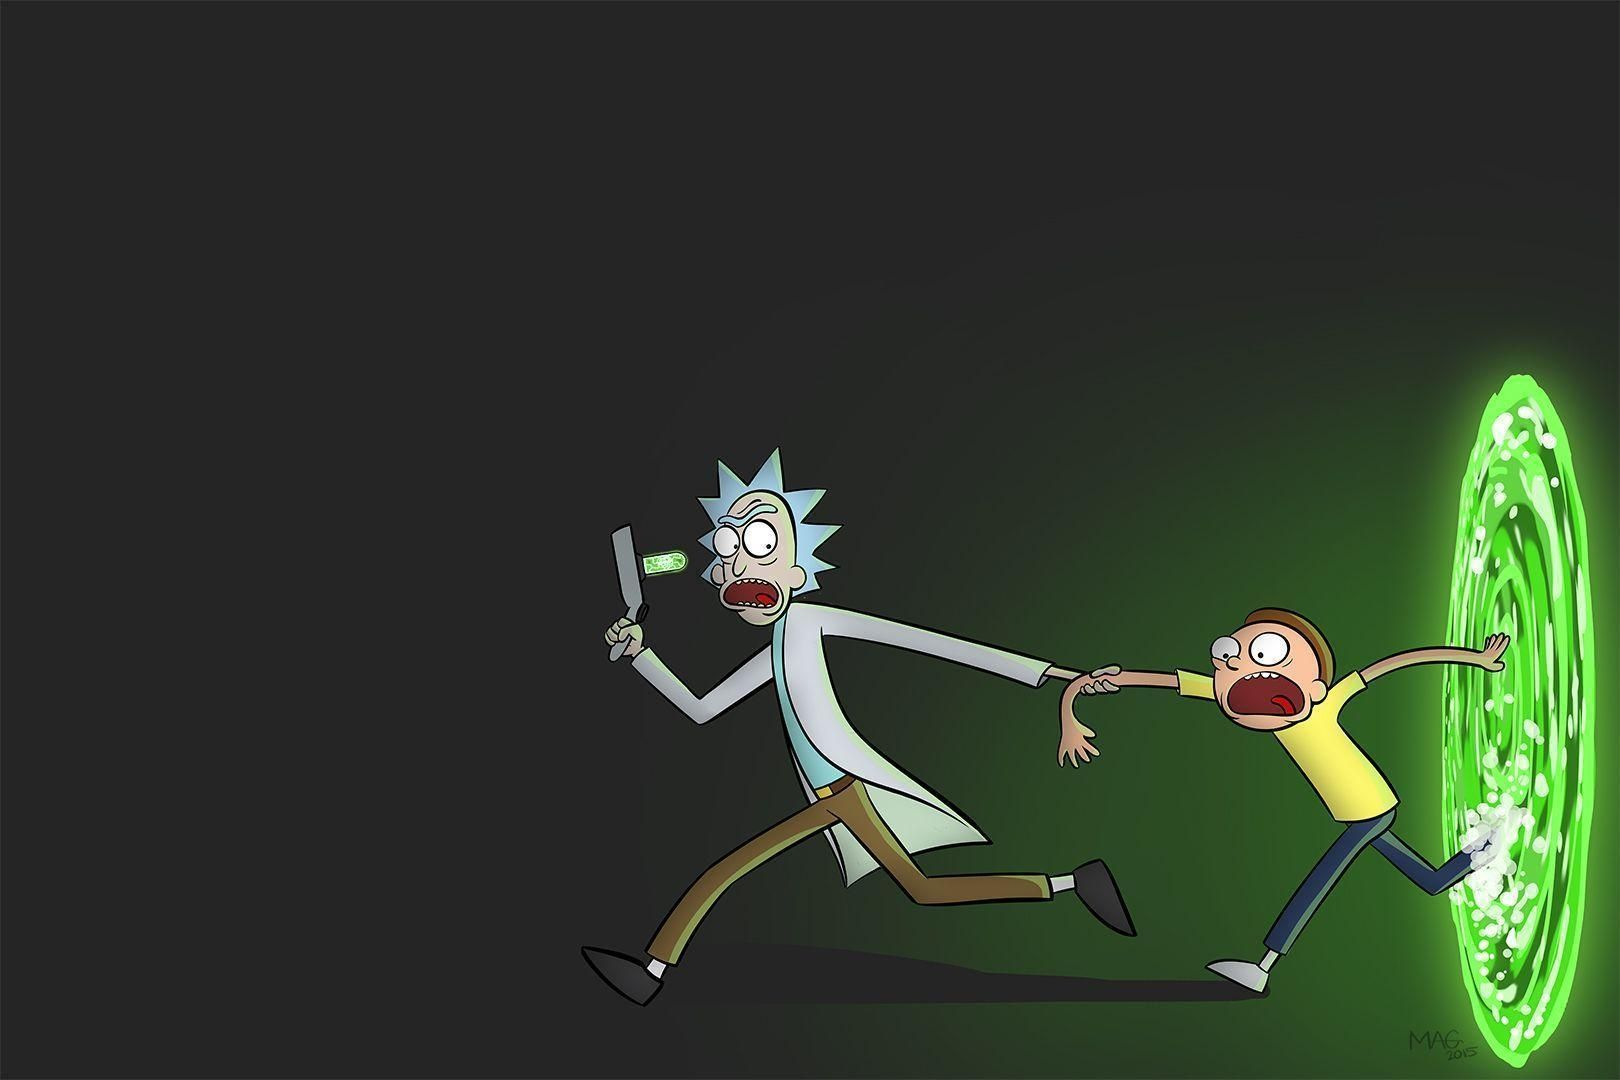 Rick And Morty Wallpapers Wallpaper Cave Pertaining To Rick And Morty Macbook Wallpaper Hd In 2020 Cartoon Wallpaper Hypebeast Wallpaper Wallpaper Pc